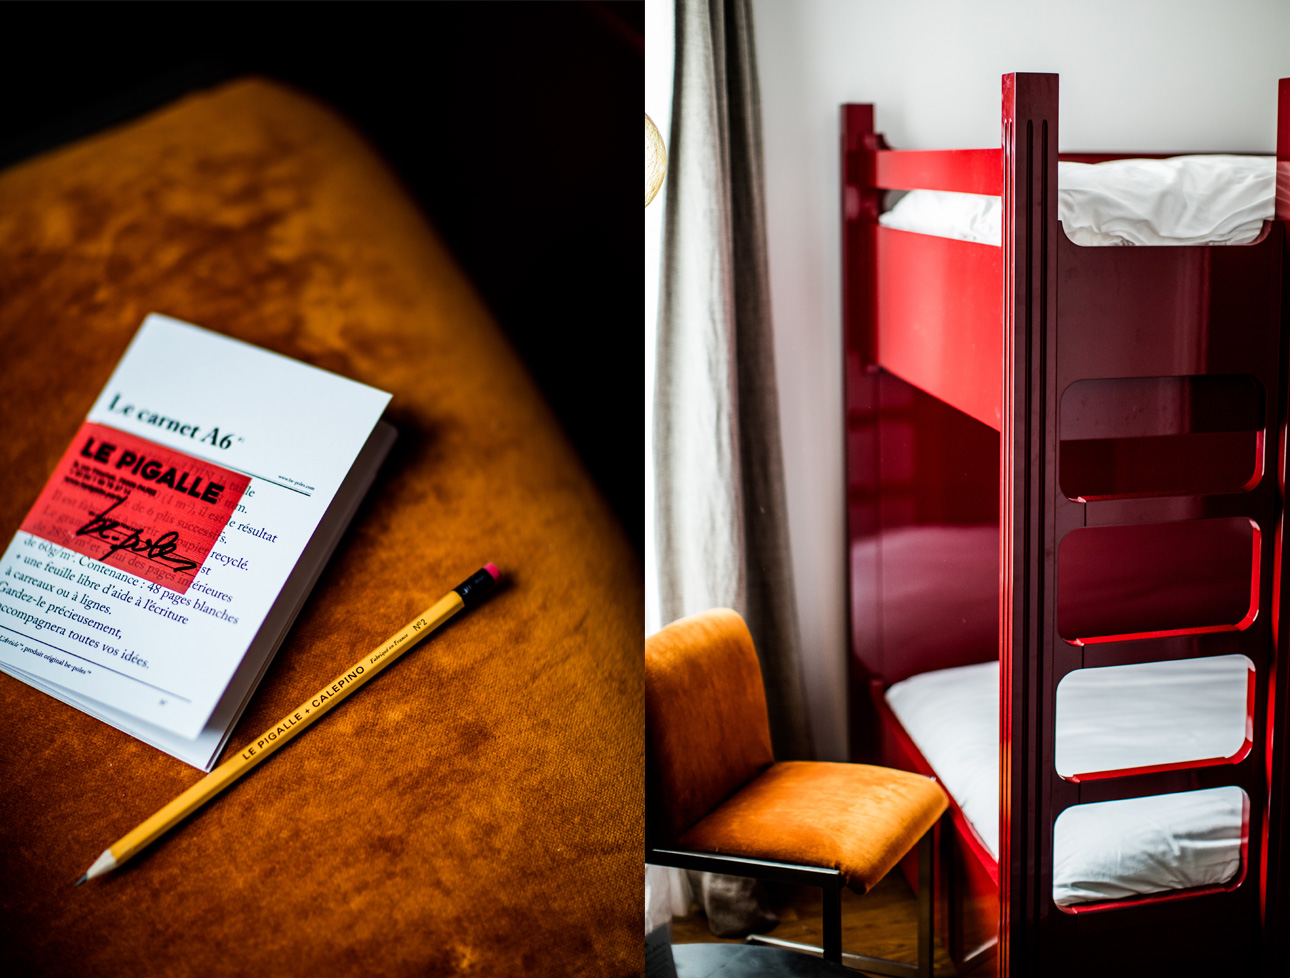 Pigalle 12 Bunk beds